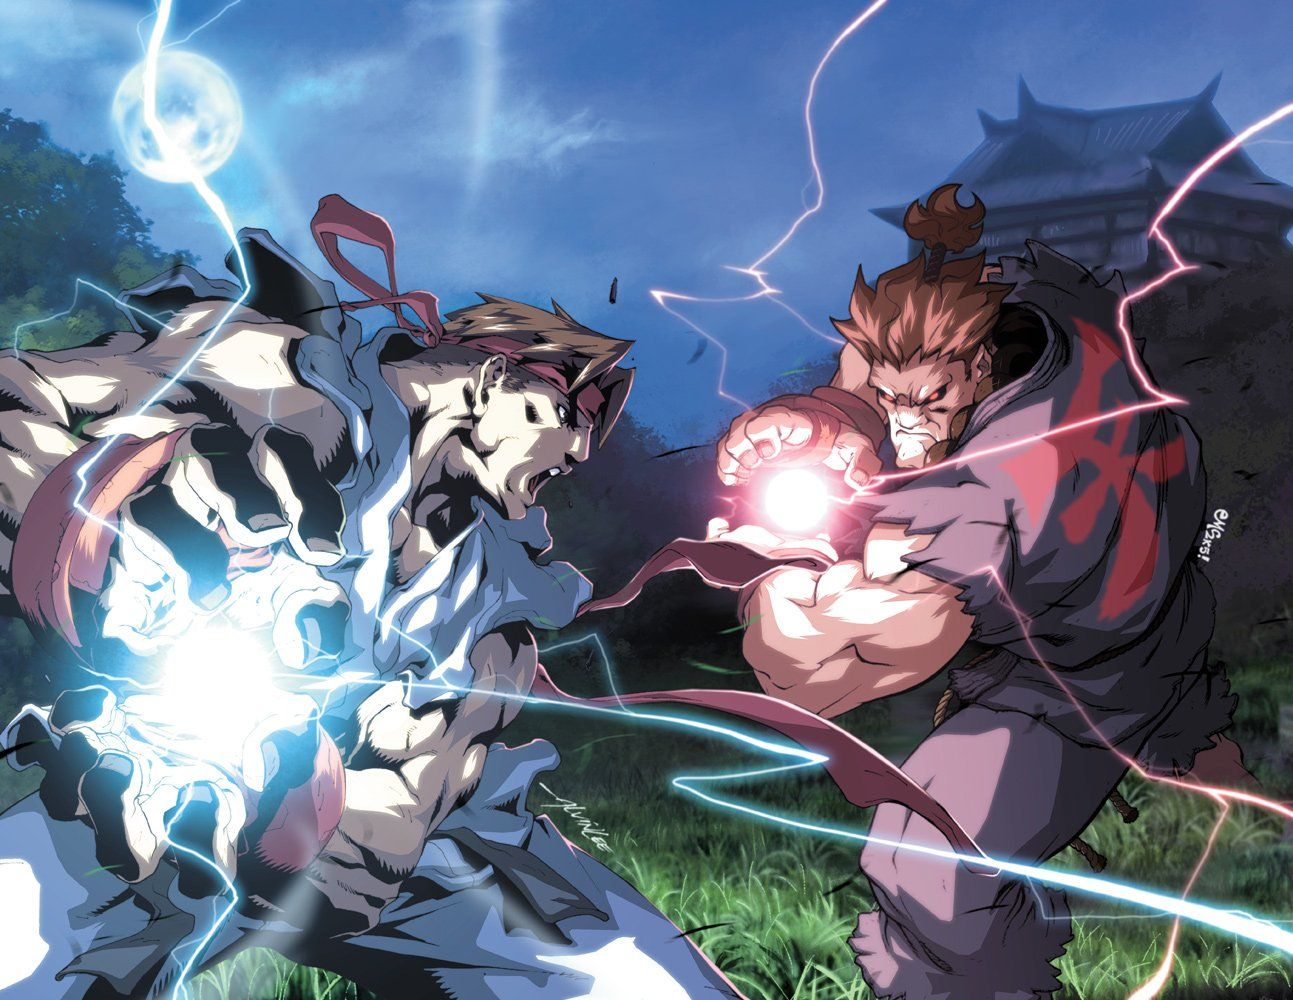 Anime Street Fighter Wallpapers Top Free Anime Street Fighter